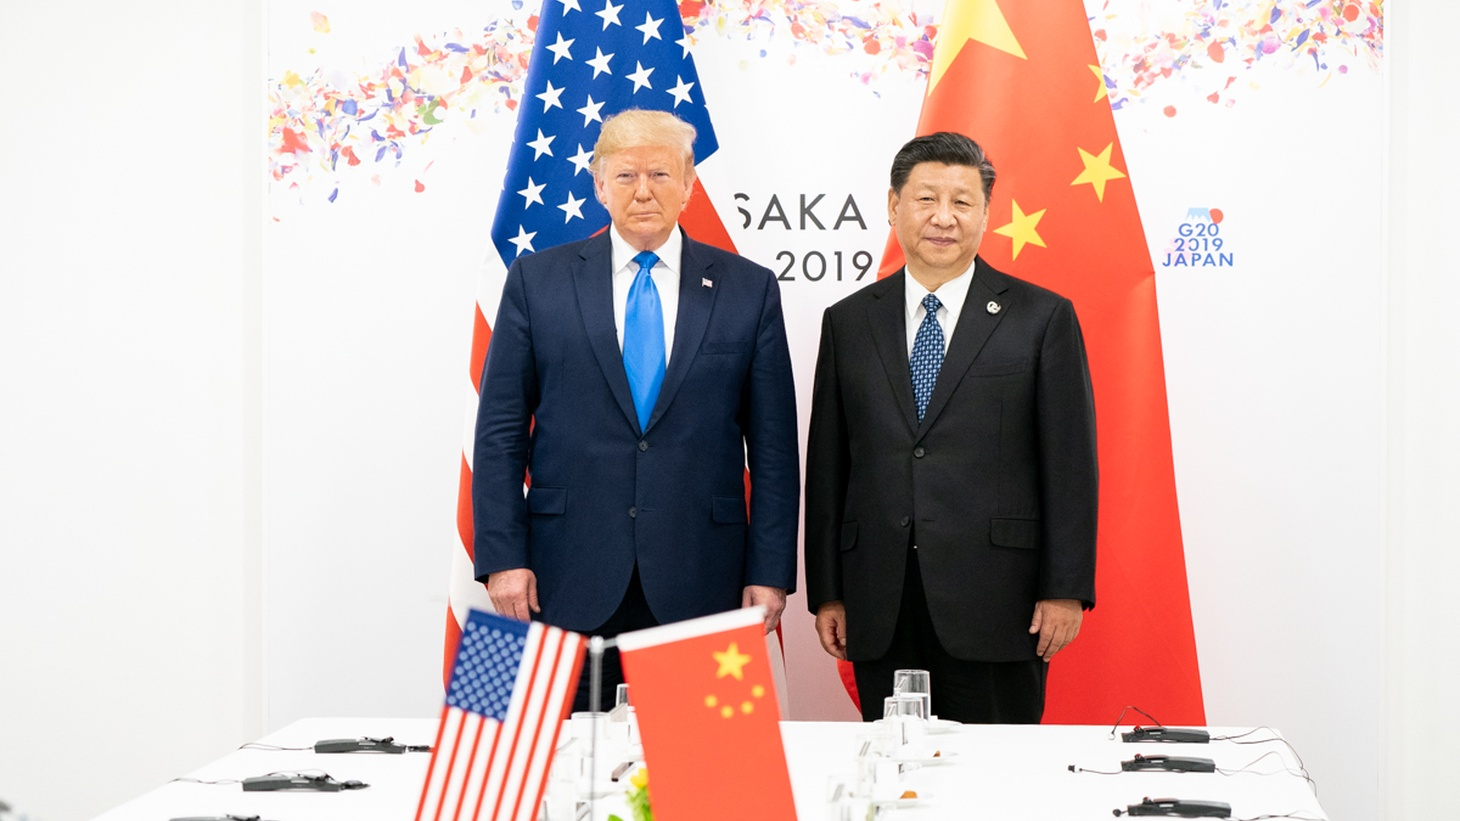 President Trump and President Xi Jinping at the G20 meeting in Osaka, Japan, 2019.